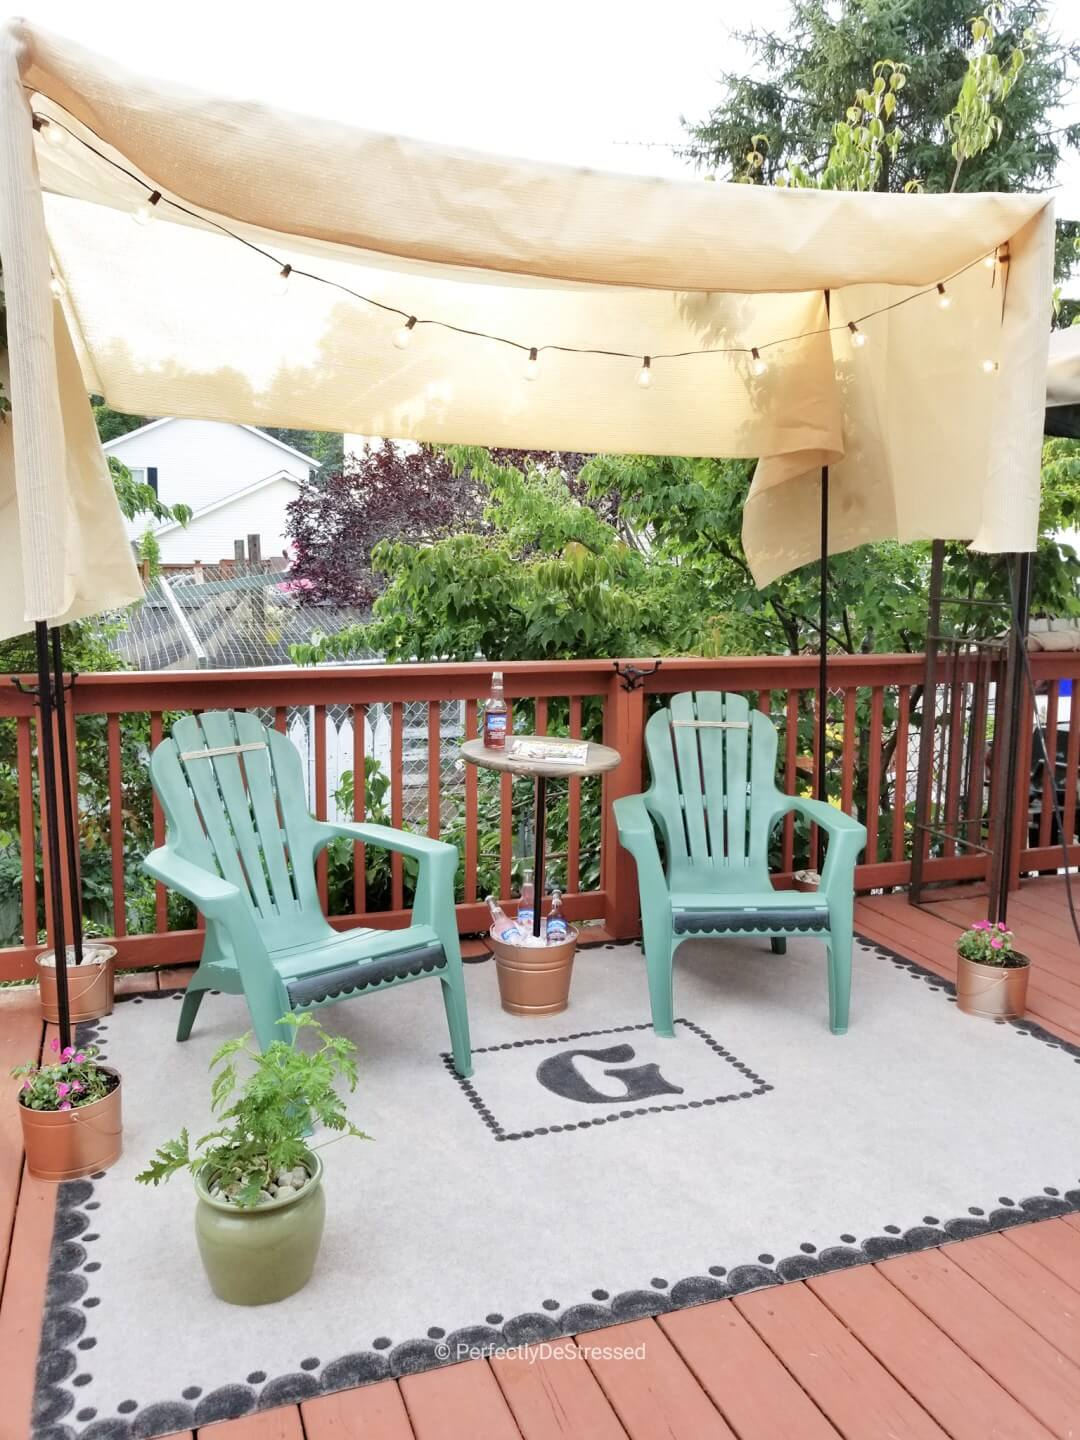 Affordable Patio Chair Renovation Project